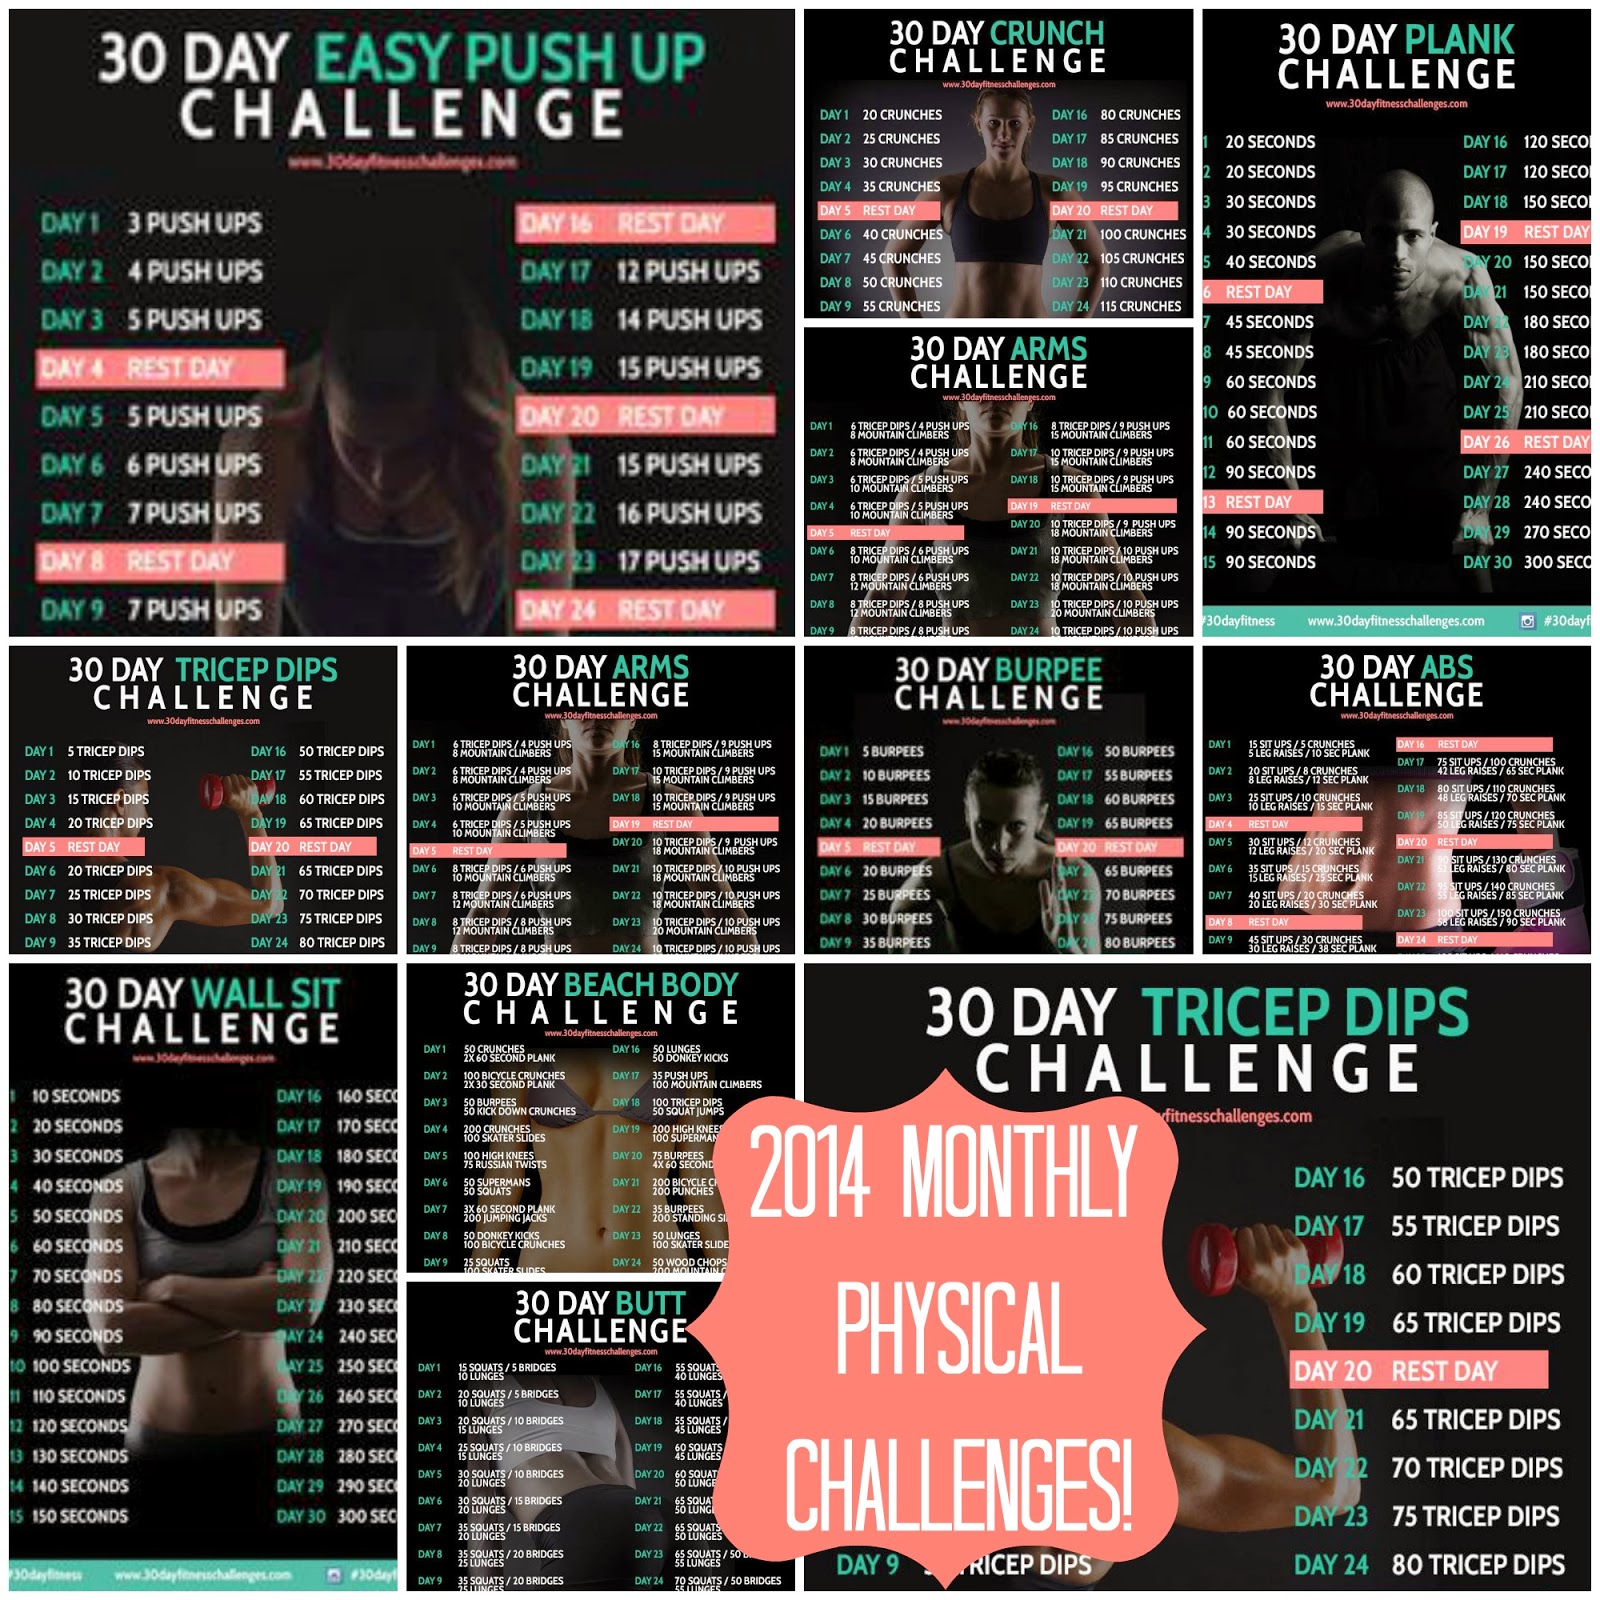 runwithjackabee: my 2014 physical challenge: challenge two